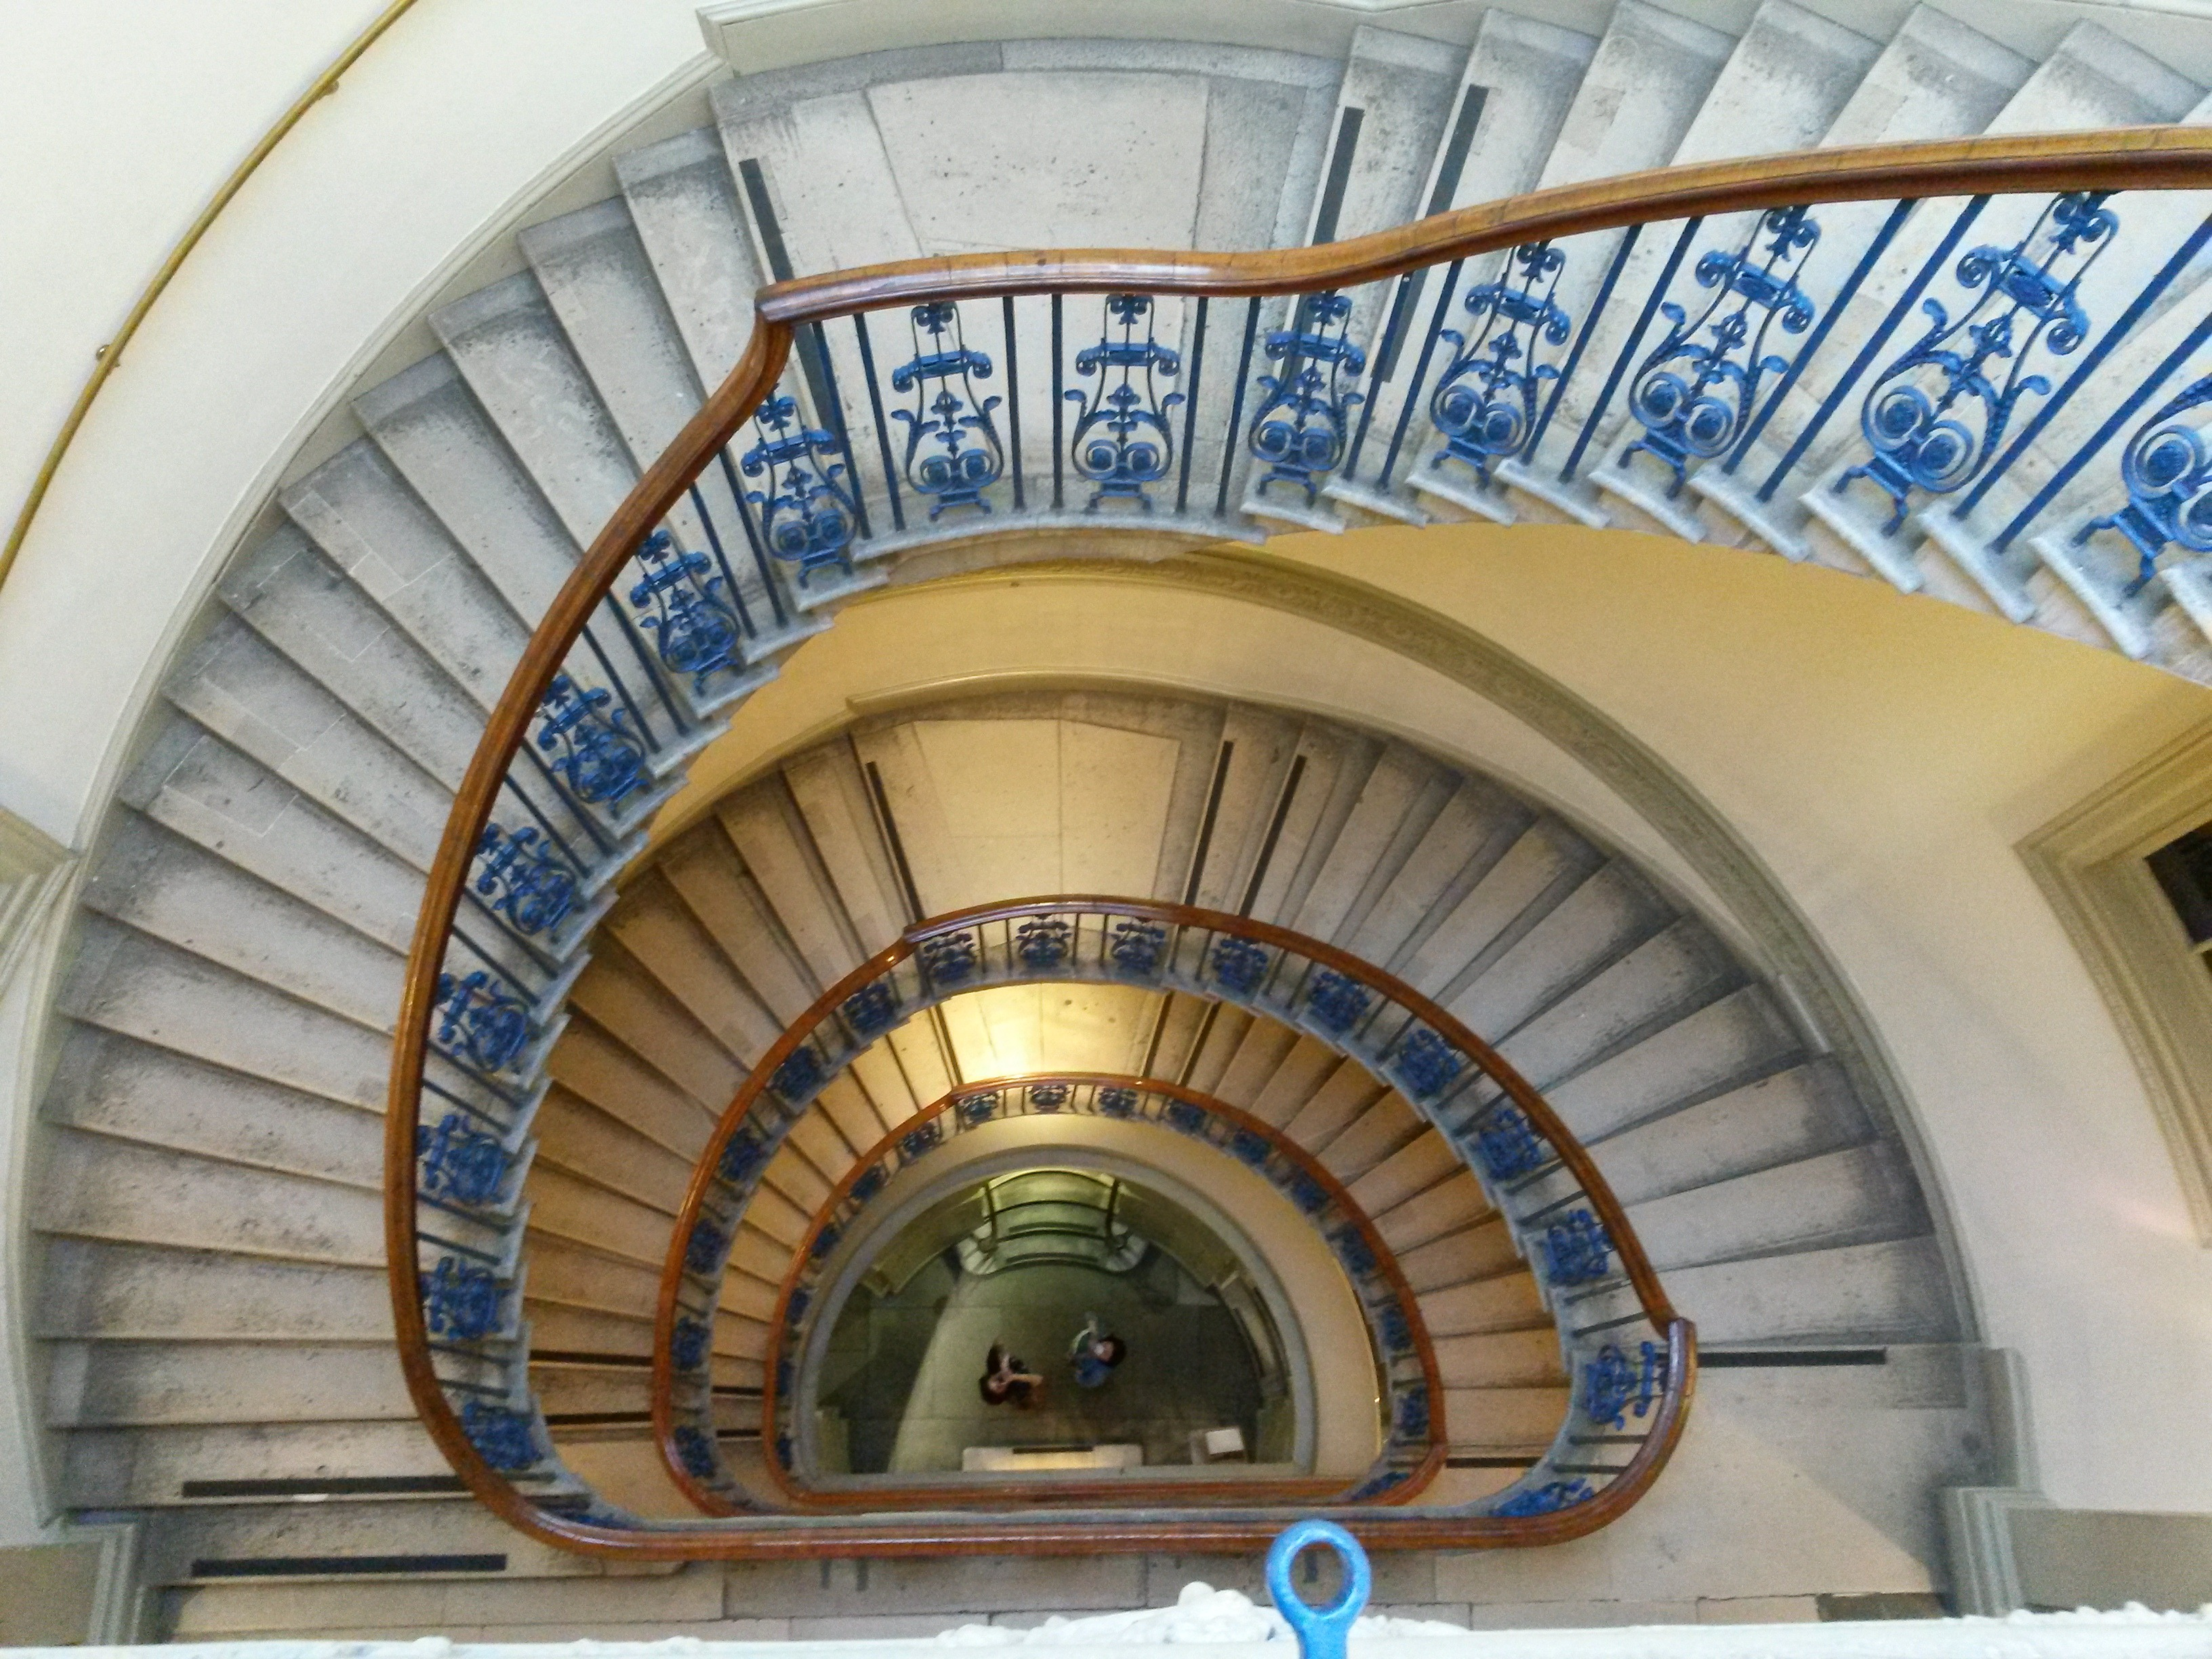 Courtauld staircase from above